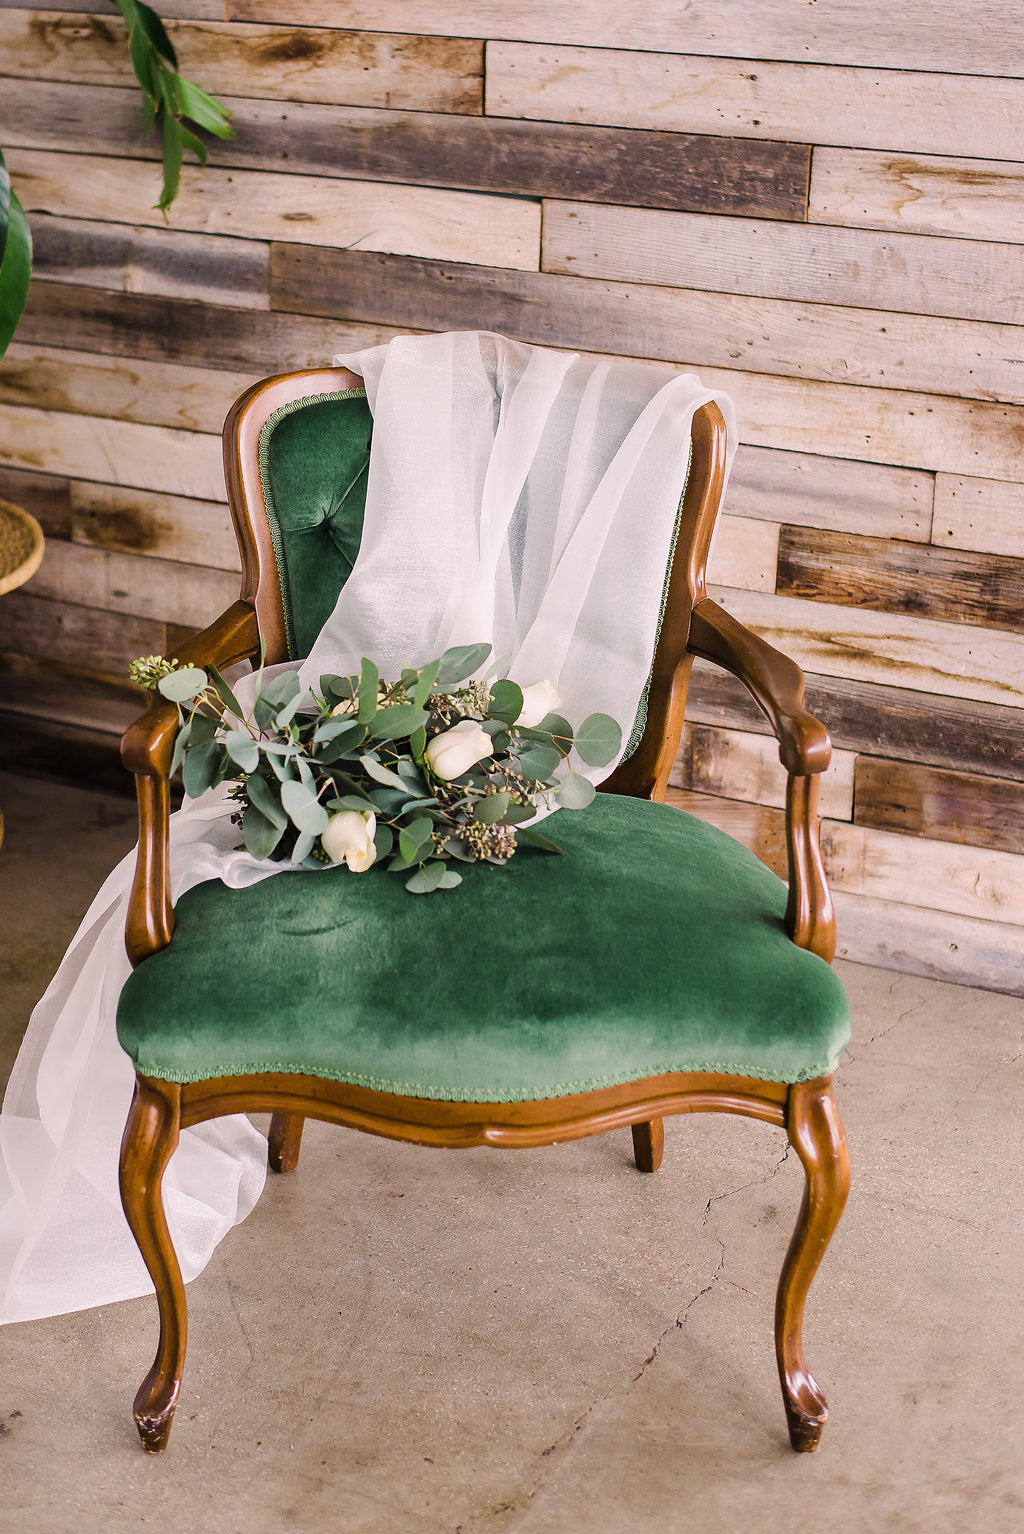 Vintage velvet green chair